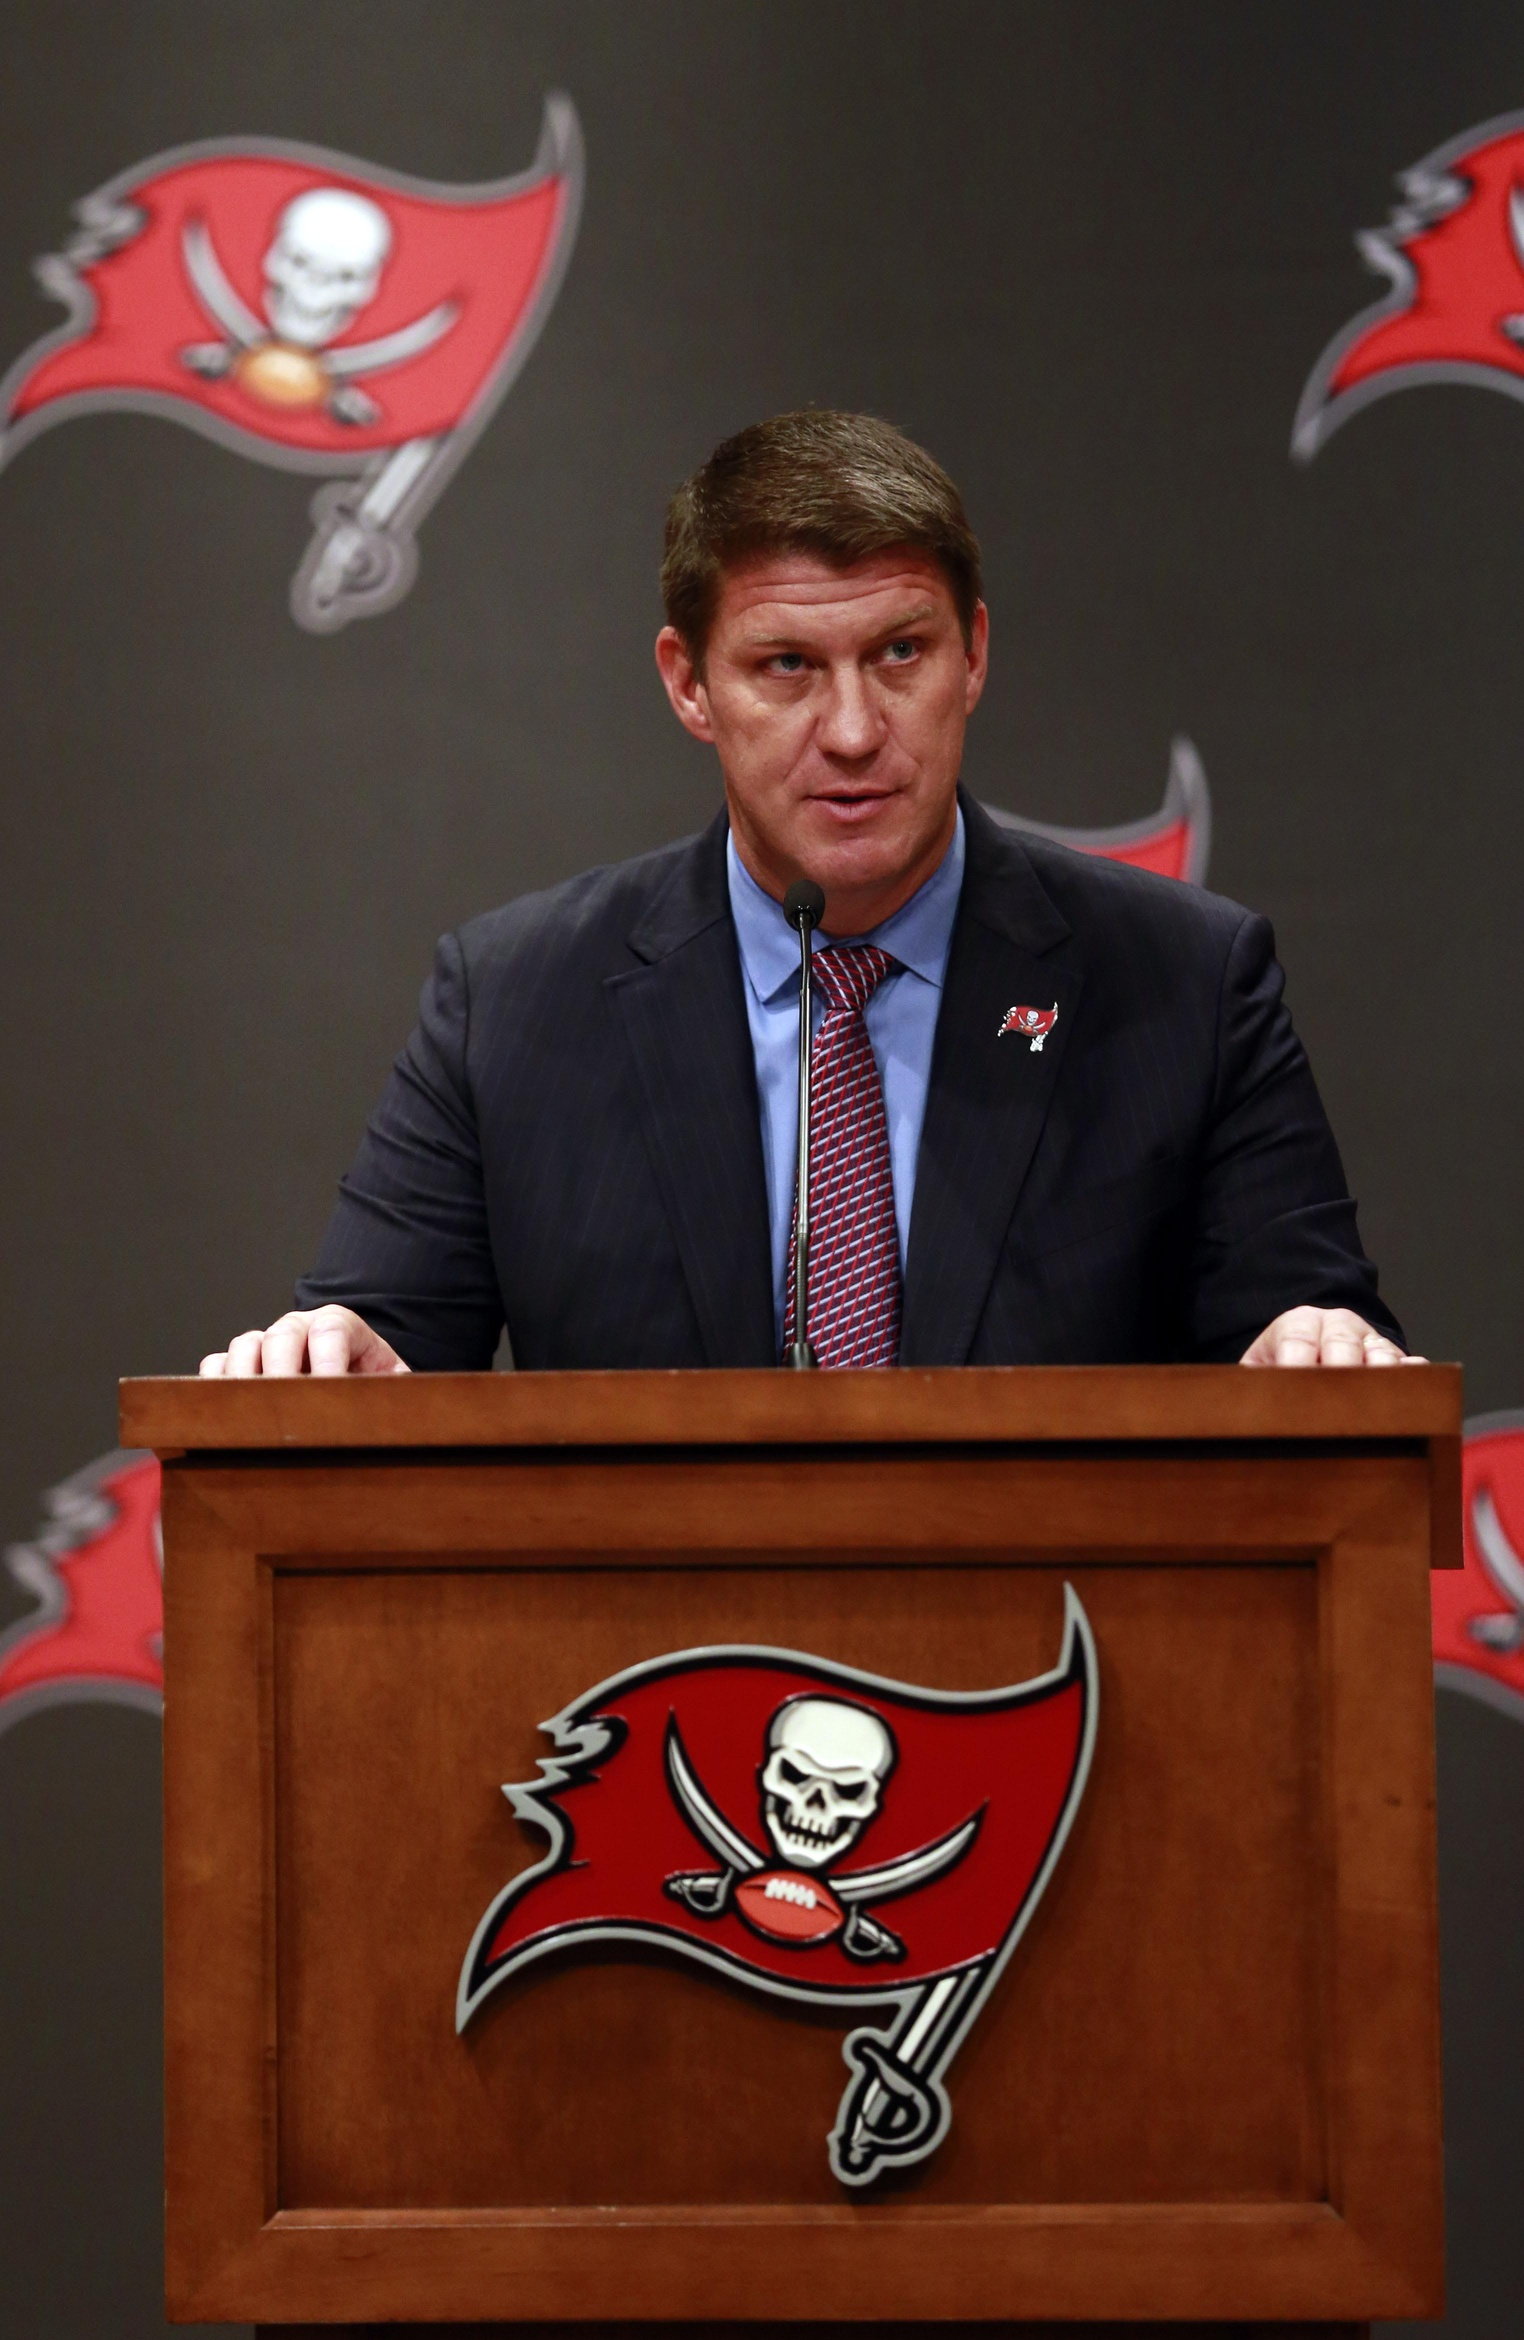 bruce carter pro football rumors jason licht